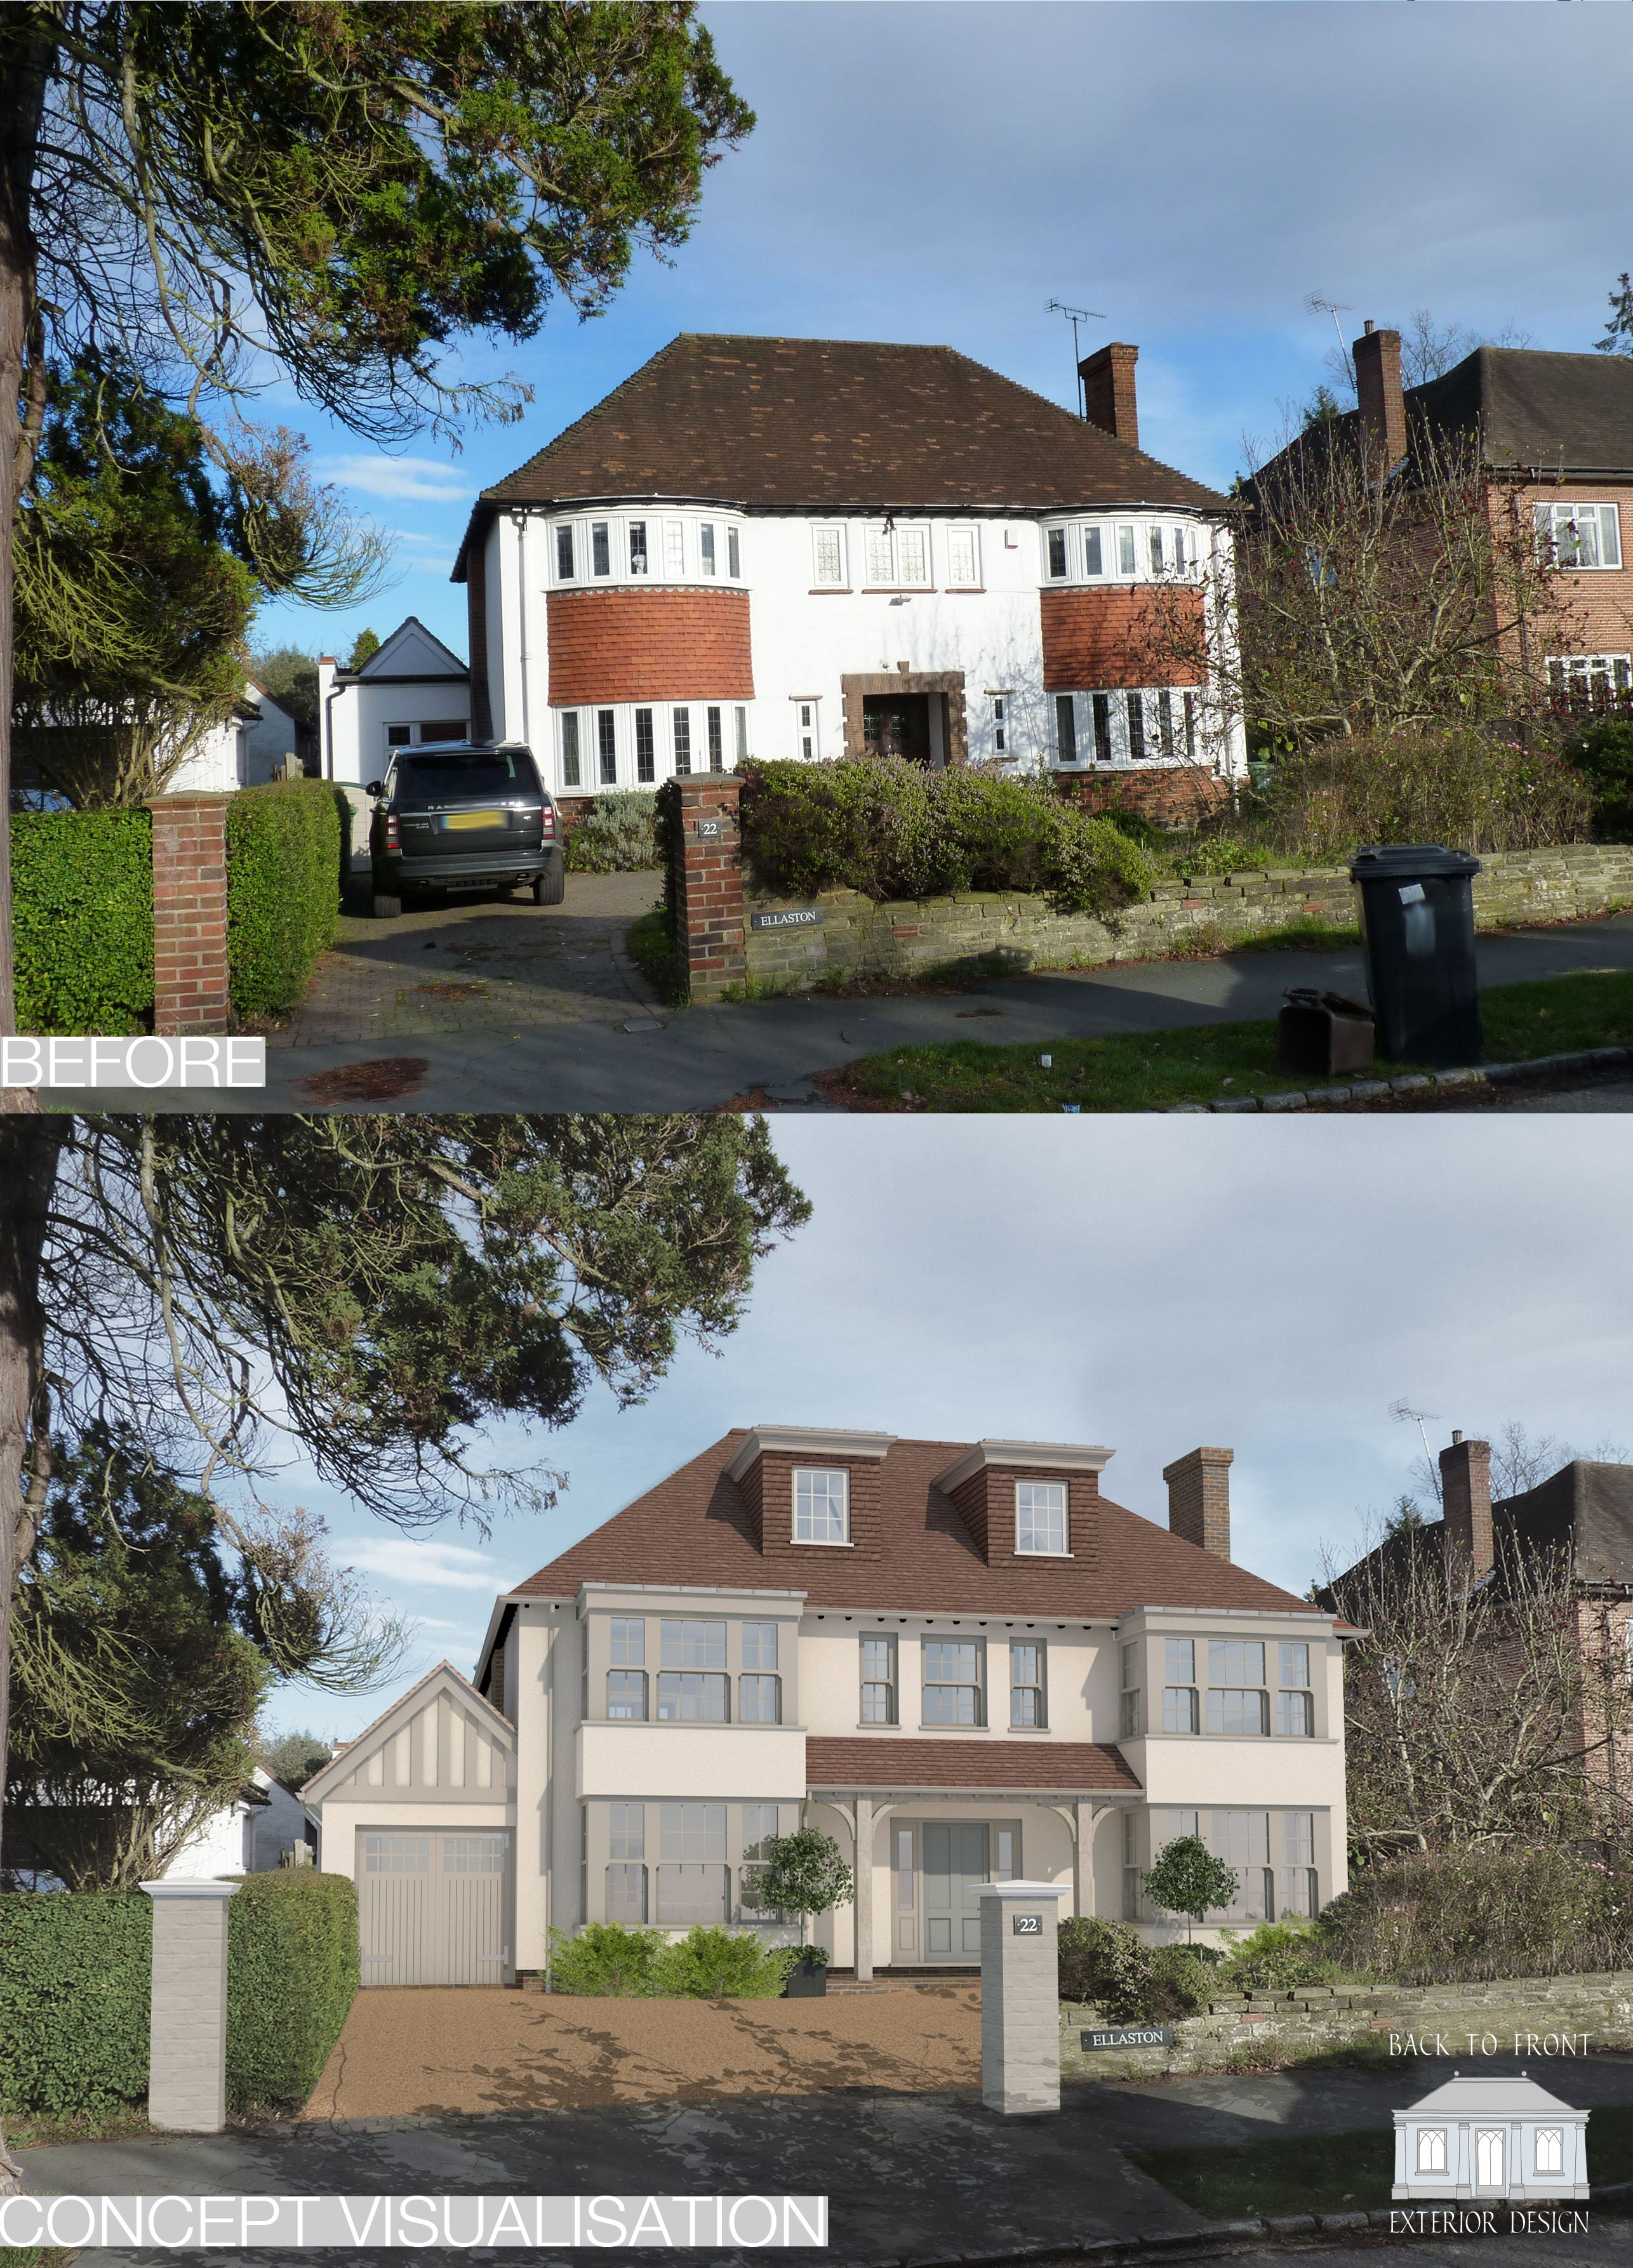 Remodelling scheme updating the exterior as well